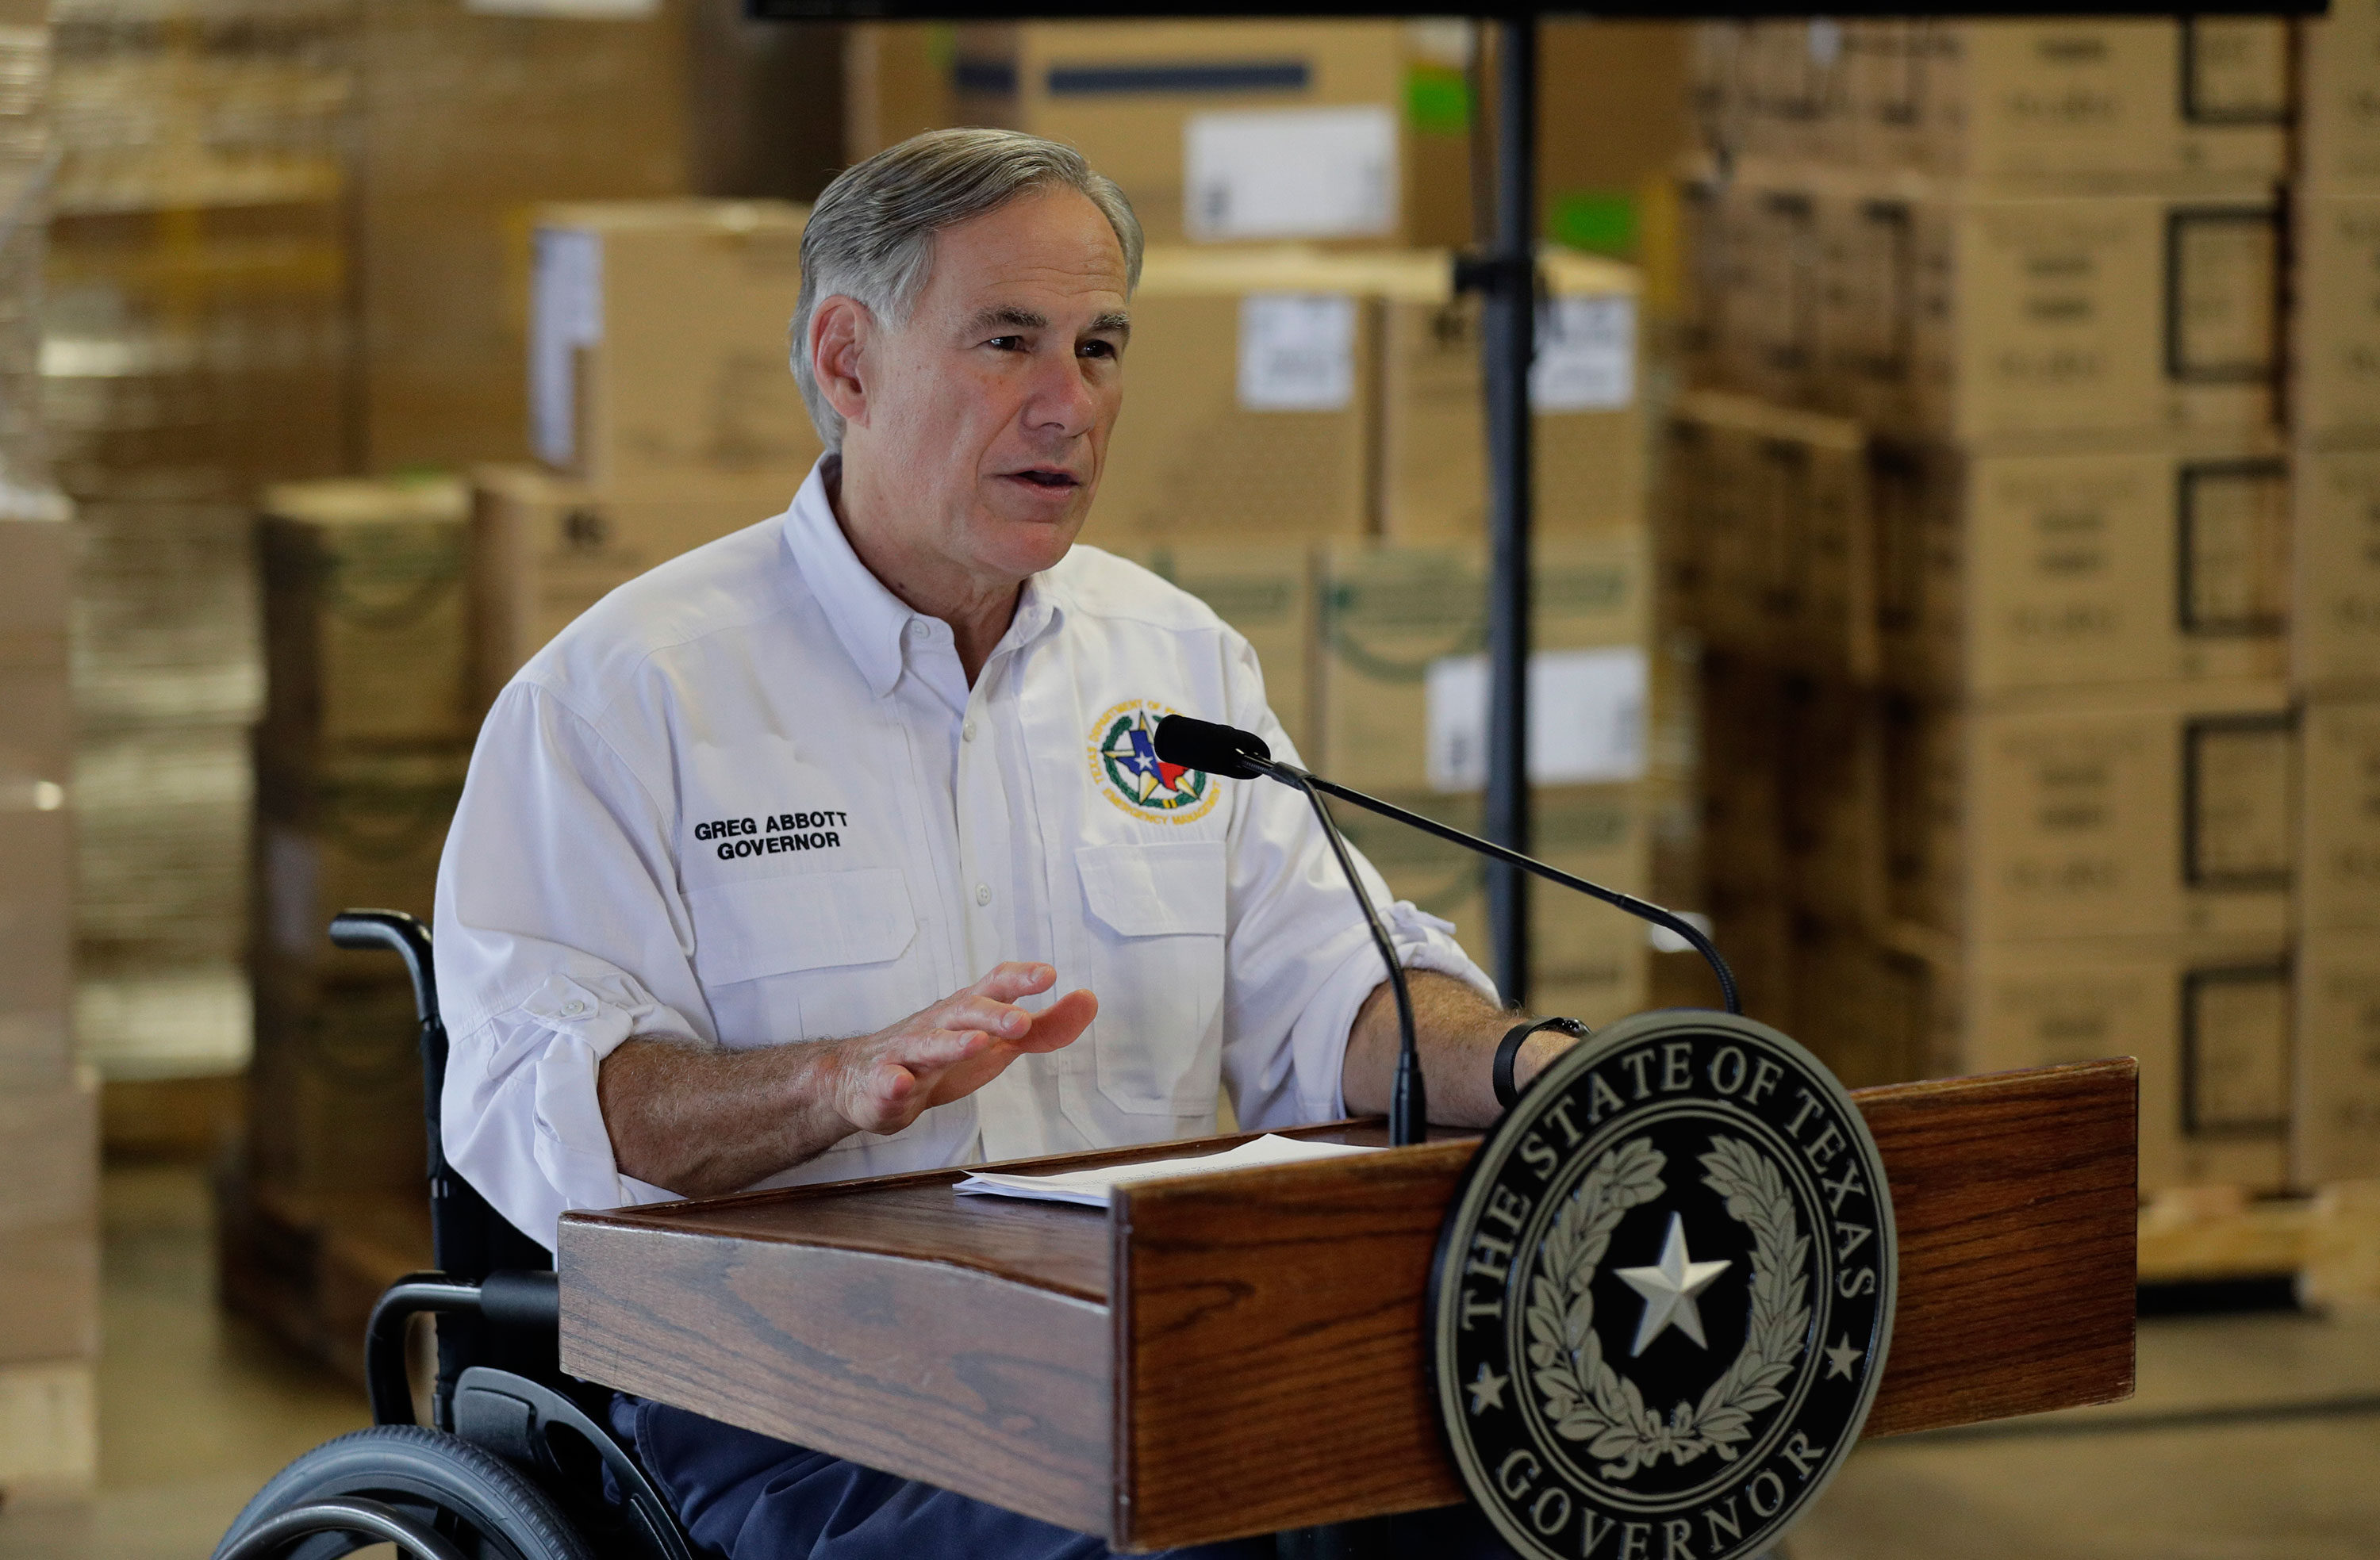 Gov. Greg Abbott gives an update on the coronavirus outbreak at the Texas Department of Public Safety warehouse facility in Austin, Texas on April 6.